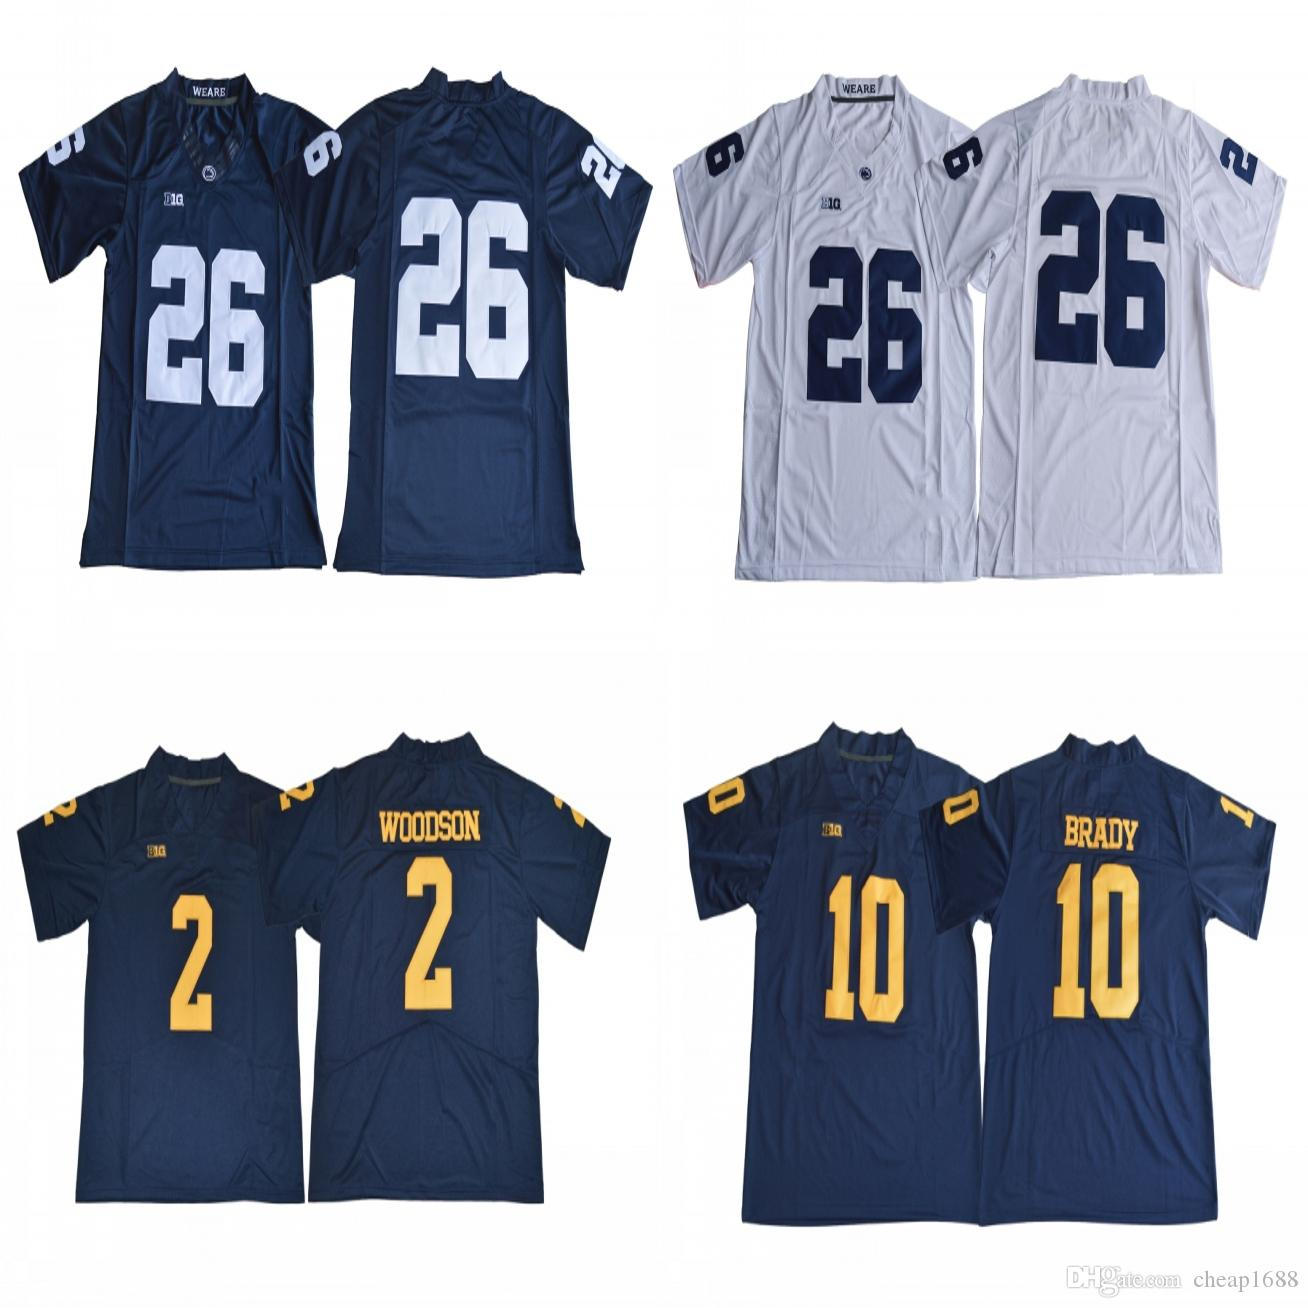 lowest price 31567 aab61 Penn State Nittany Lions #26 Saquon Barkley Blue White Jersey Michigan  Wolverines #2 Charles Woodson #10 Tom Brady Navy Blue Jerseys